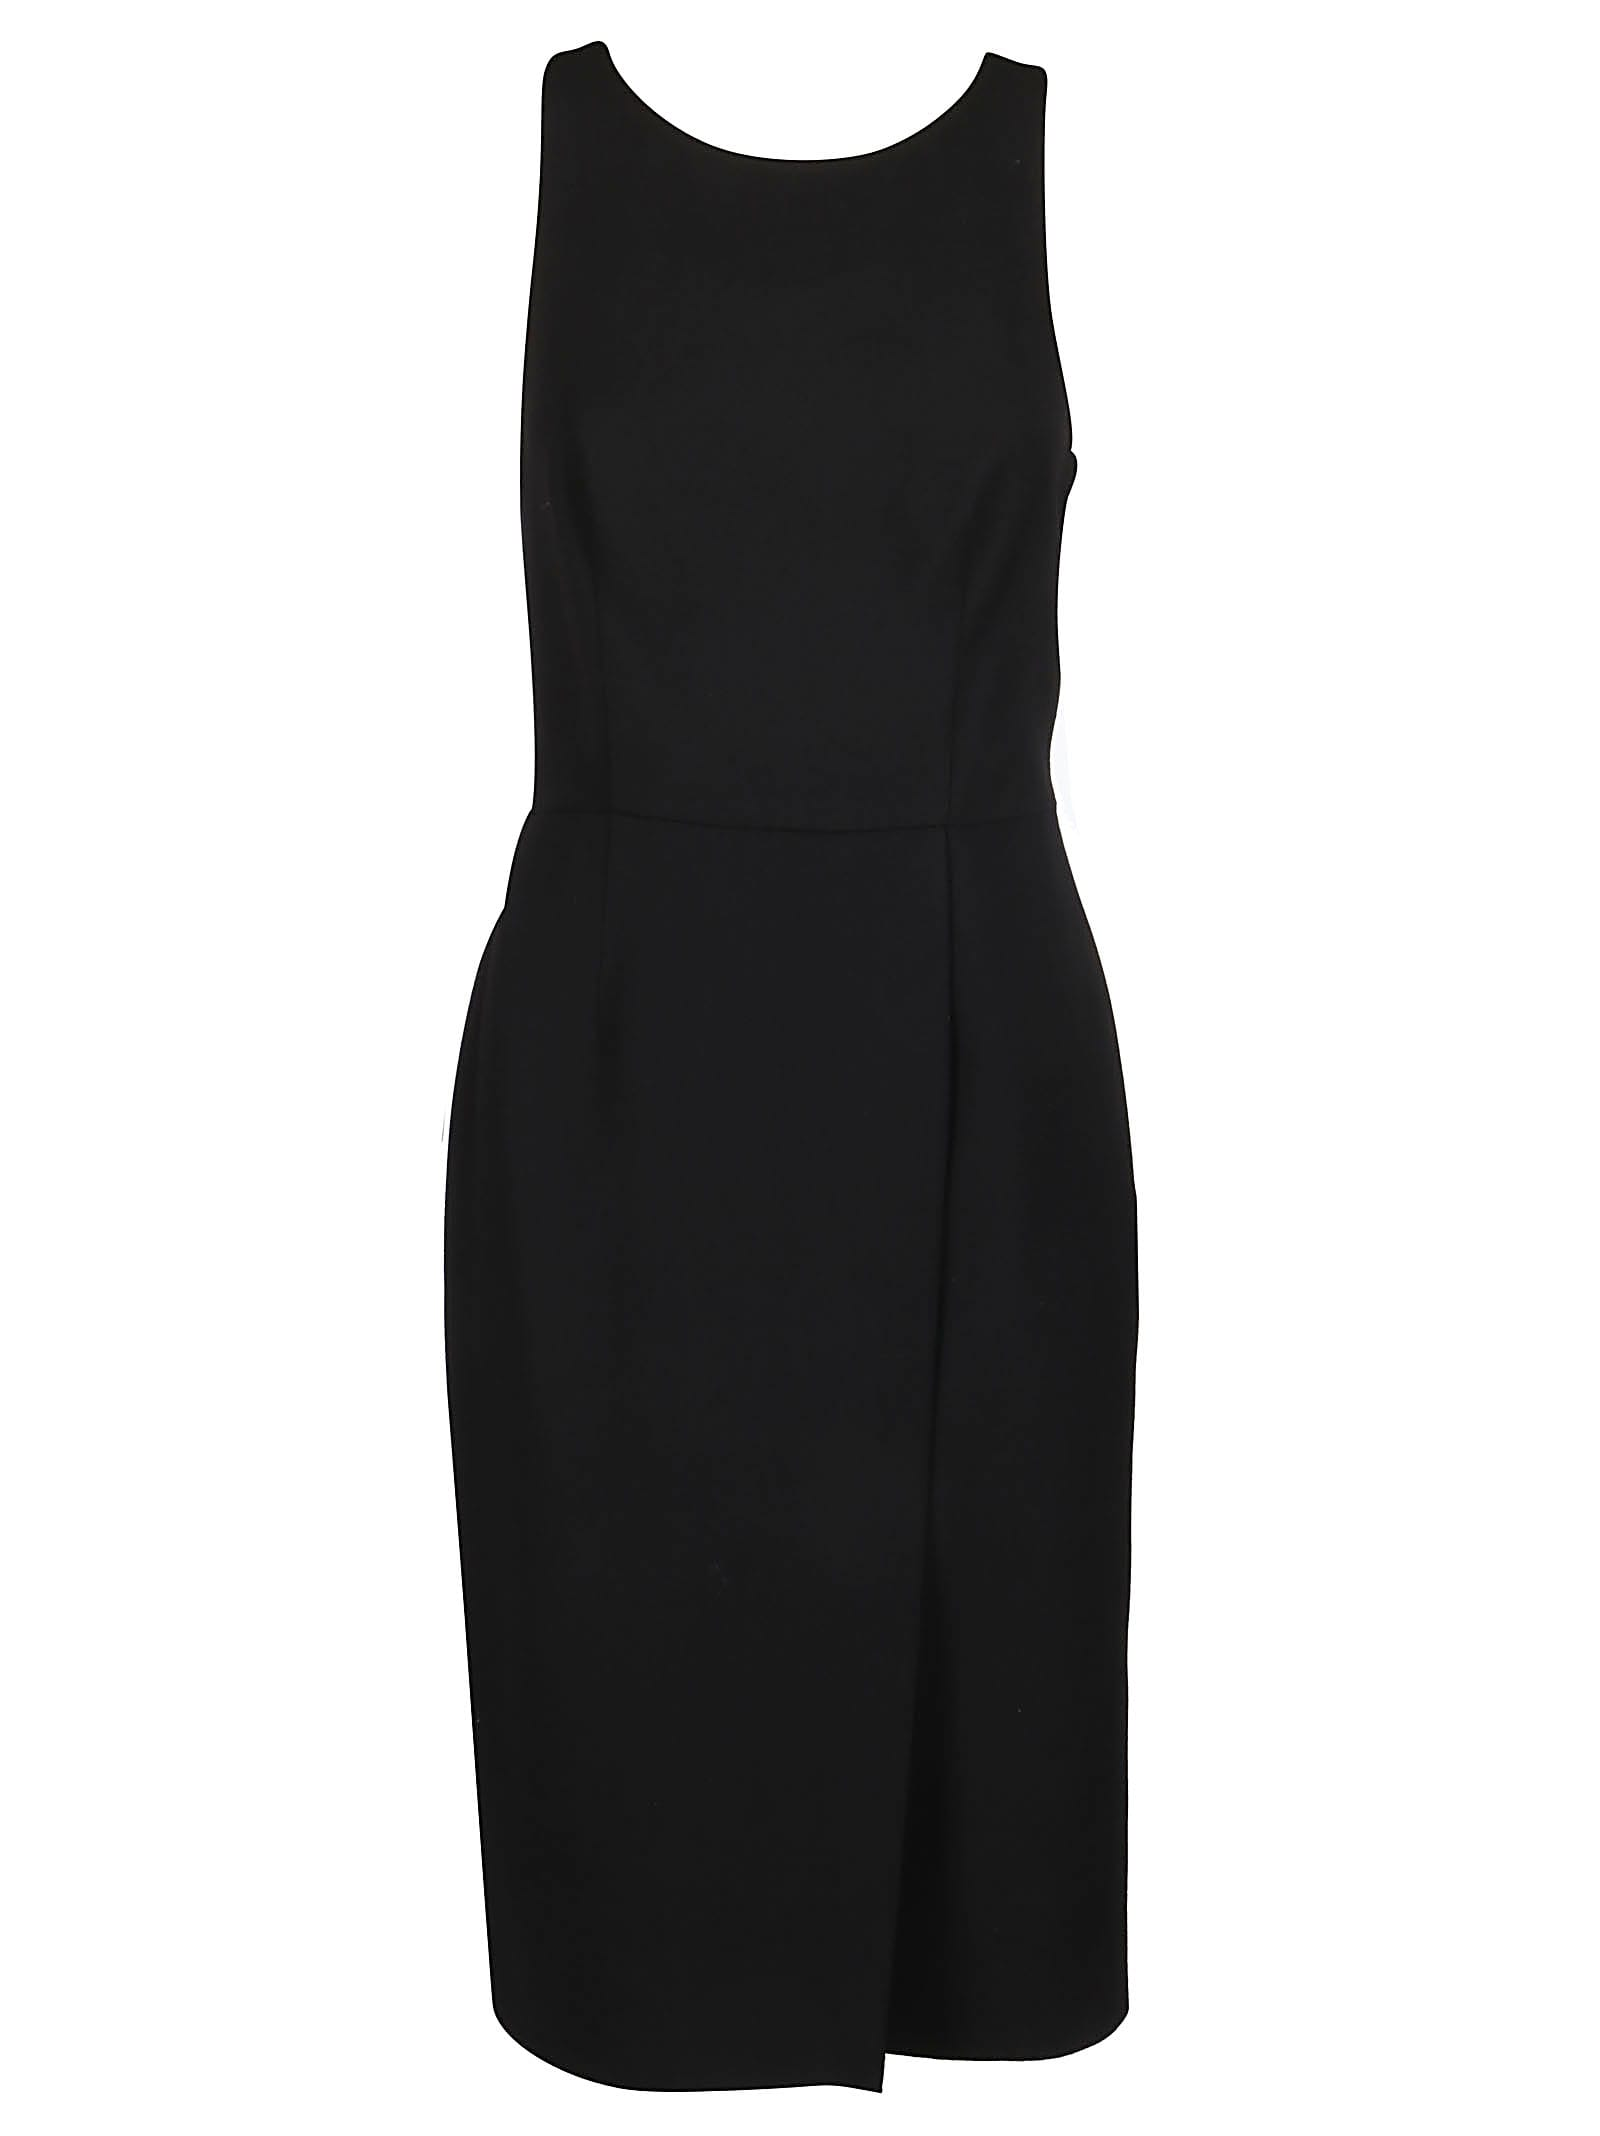 Buy Givenchy Black Wool Dress online, shop Givenchy with free shipping